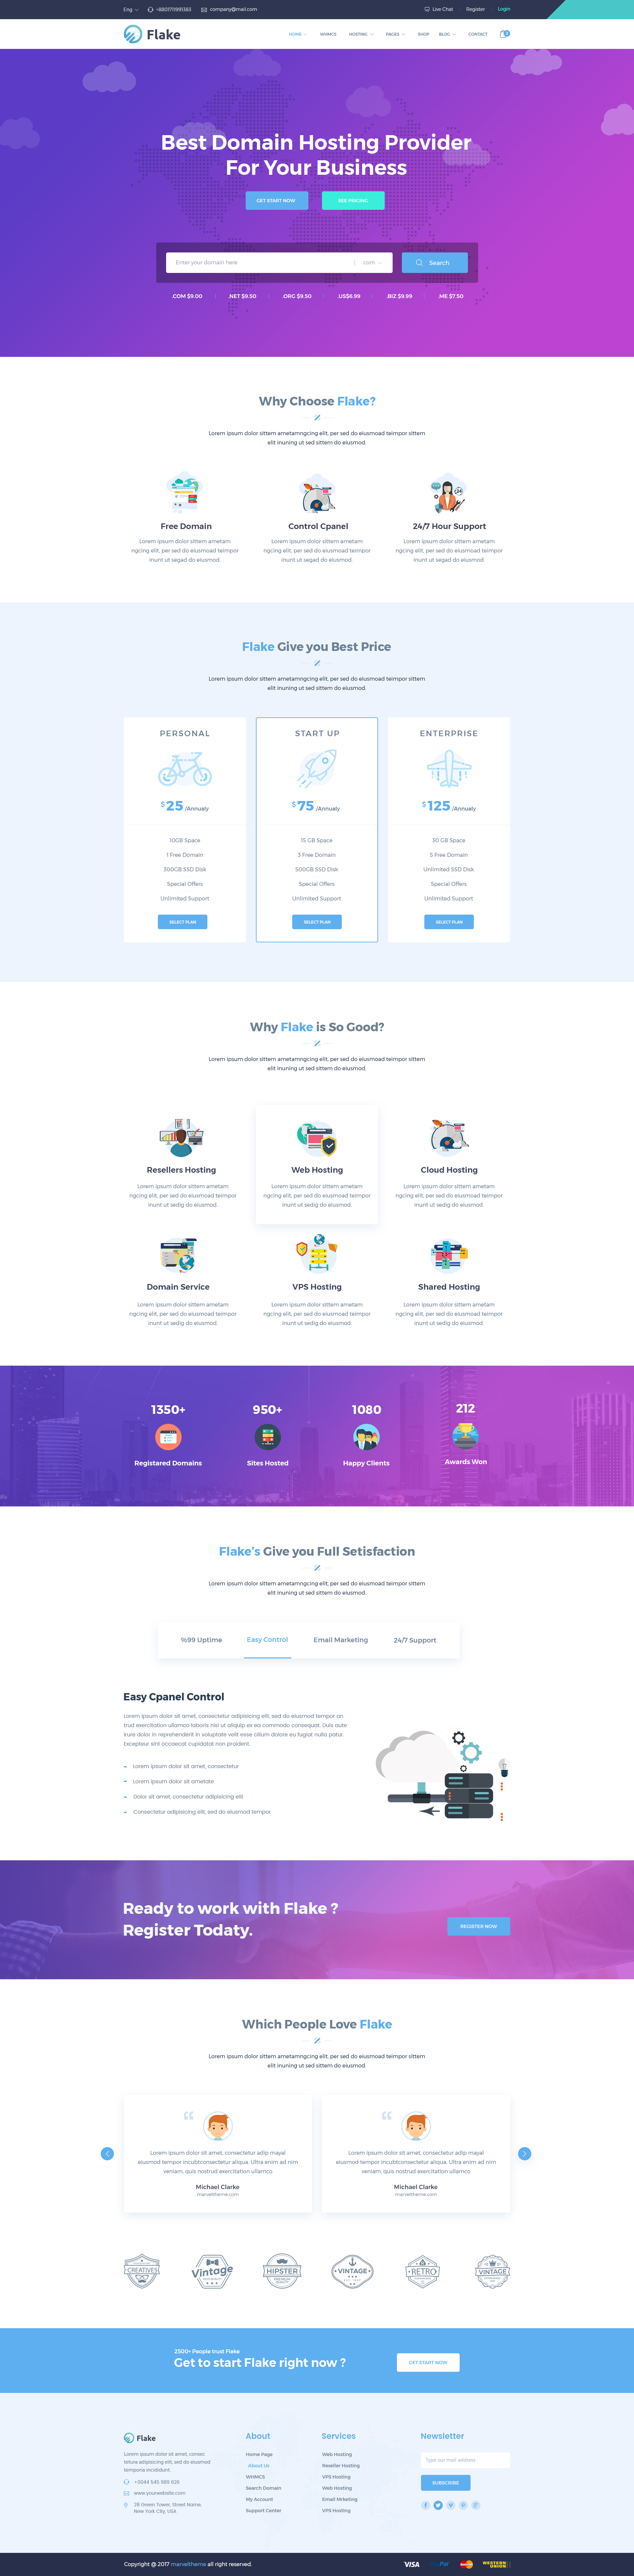 flake domain hosting and technology psd template by marvel theme